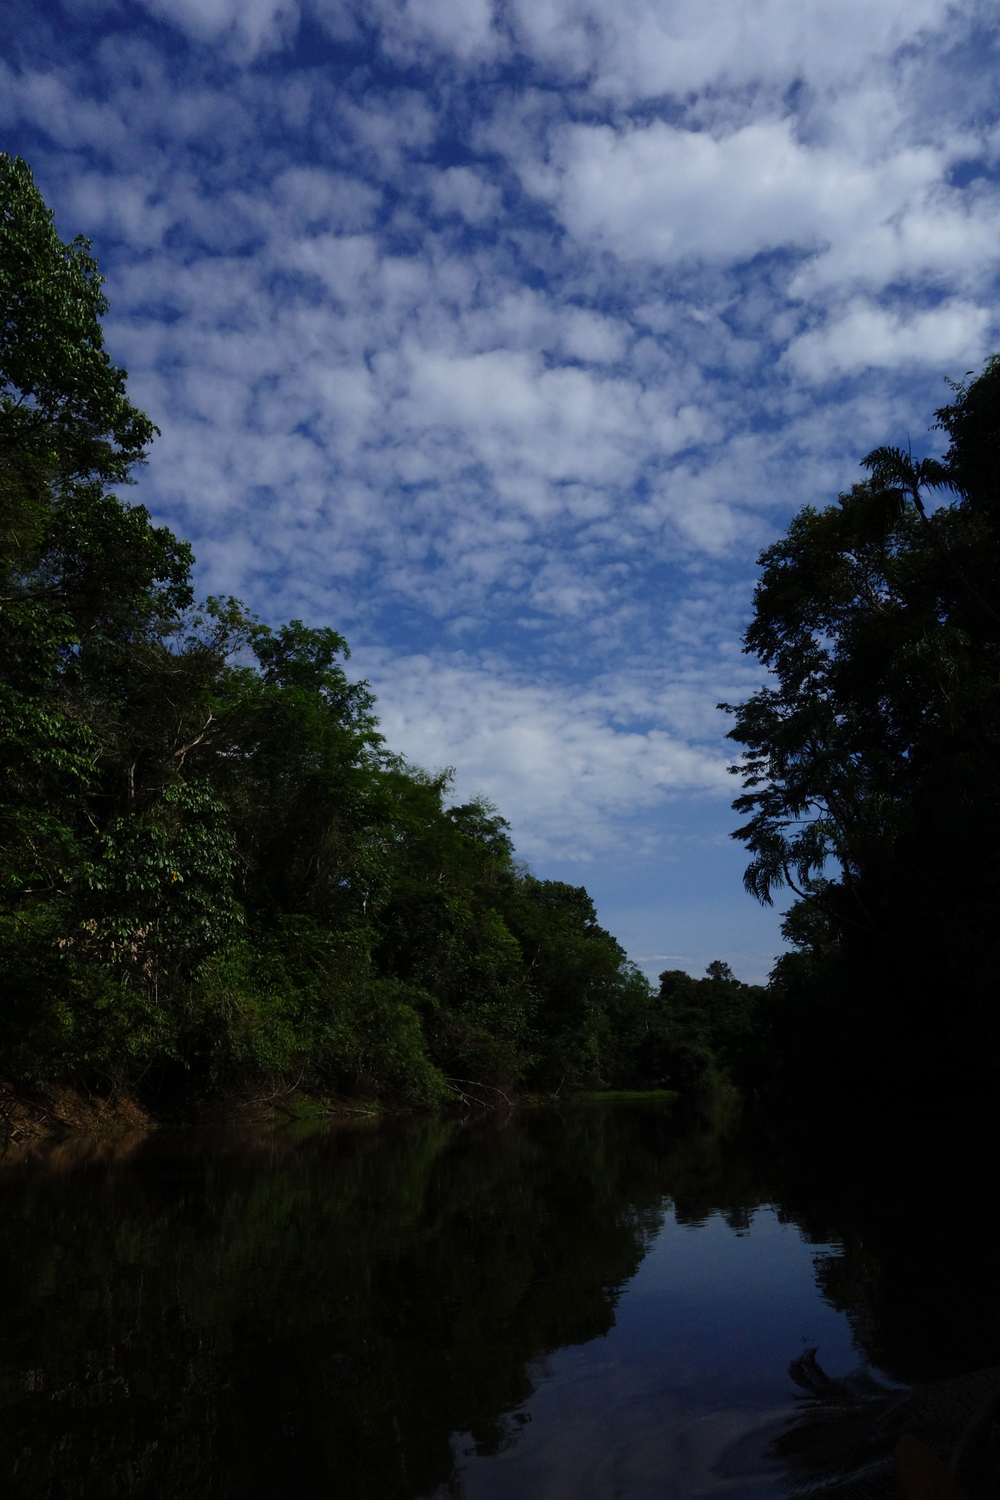 Mid afternoon on the Samiria River